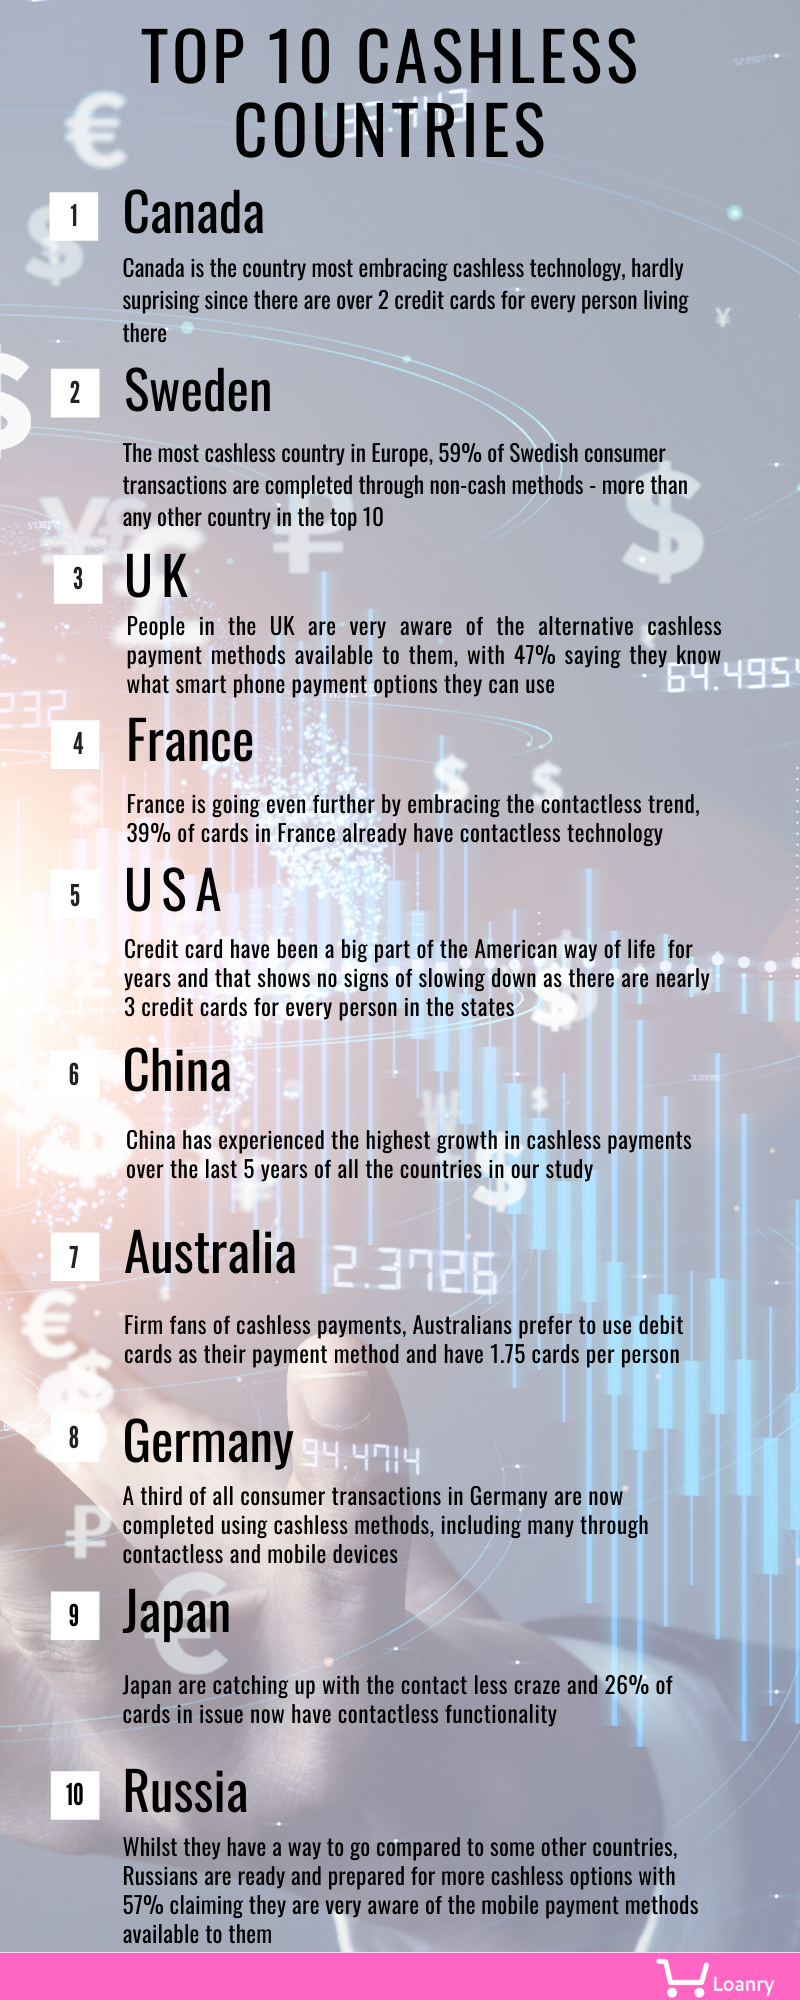 Top 10 cashless countries